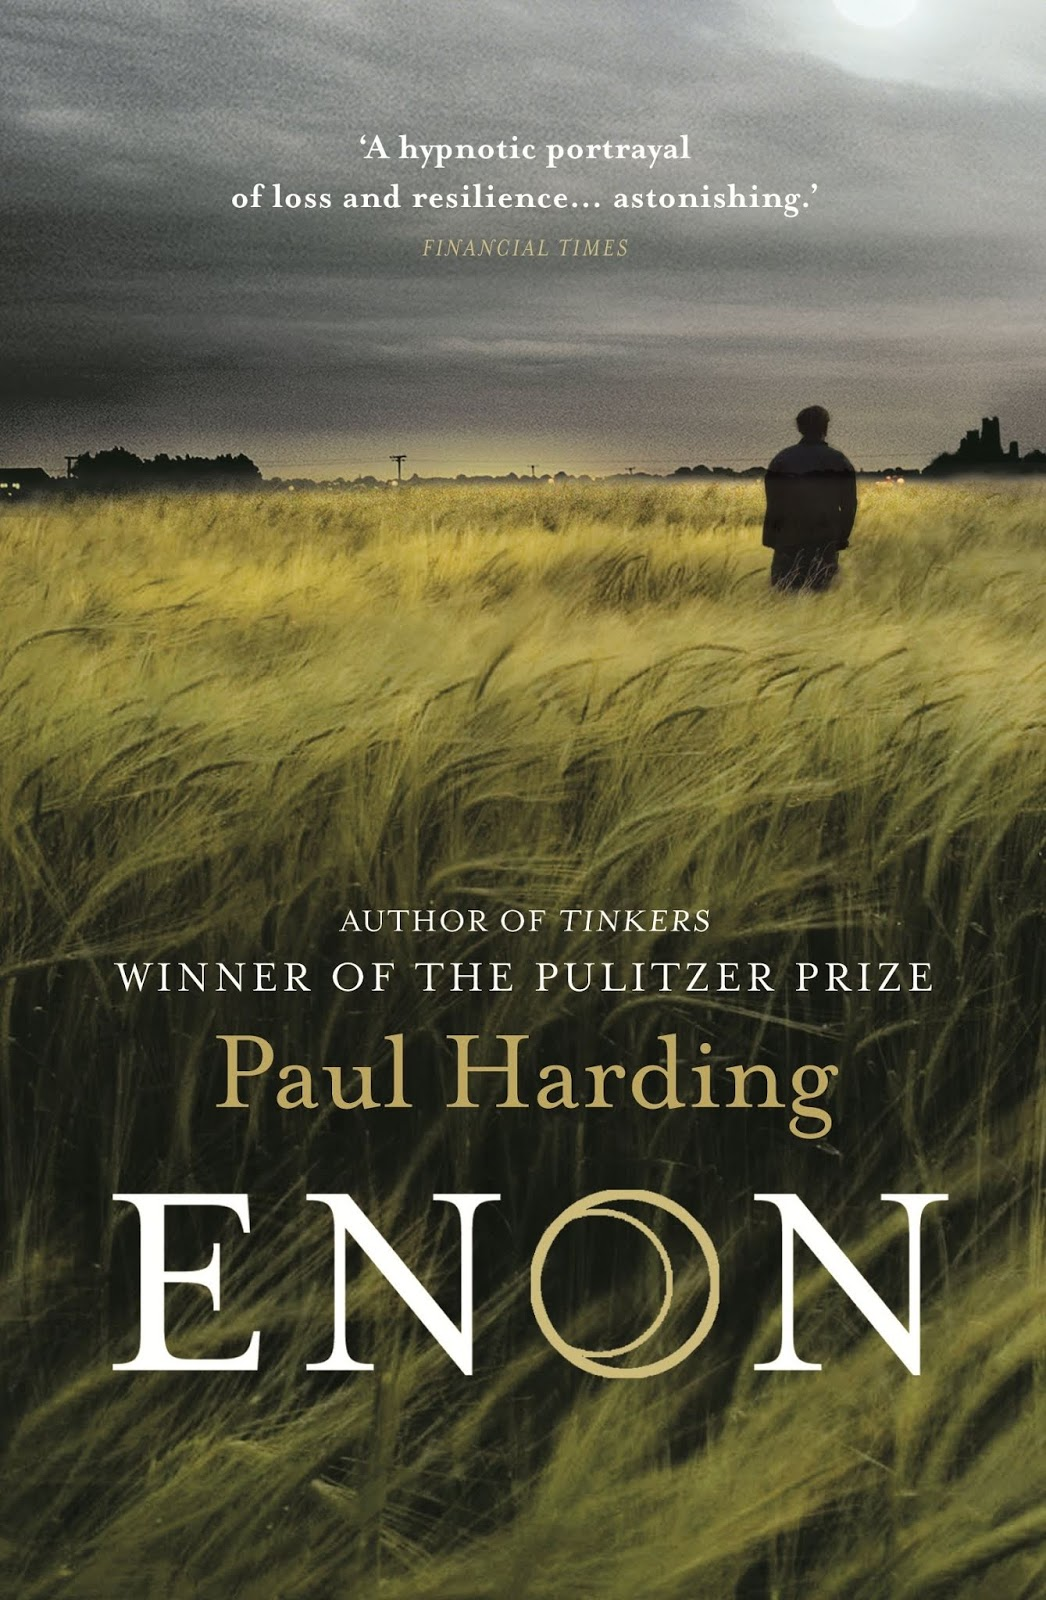 Enon by Paul Harding